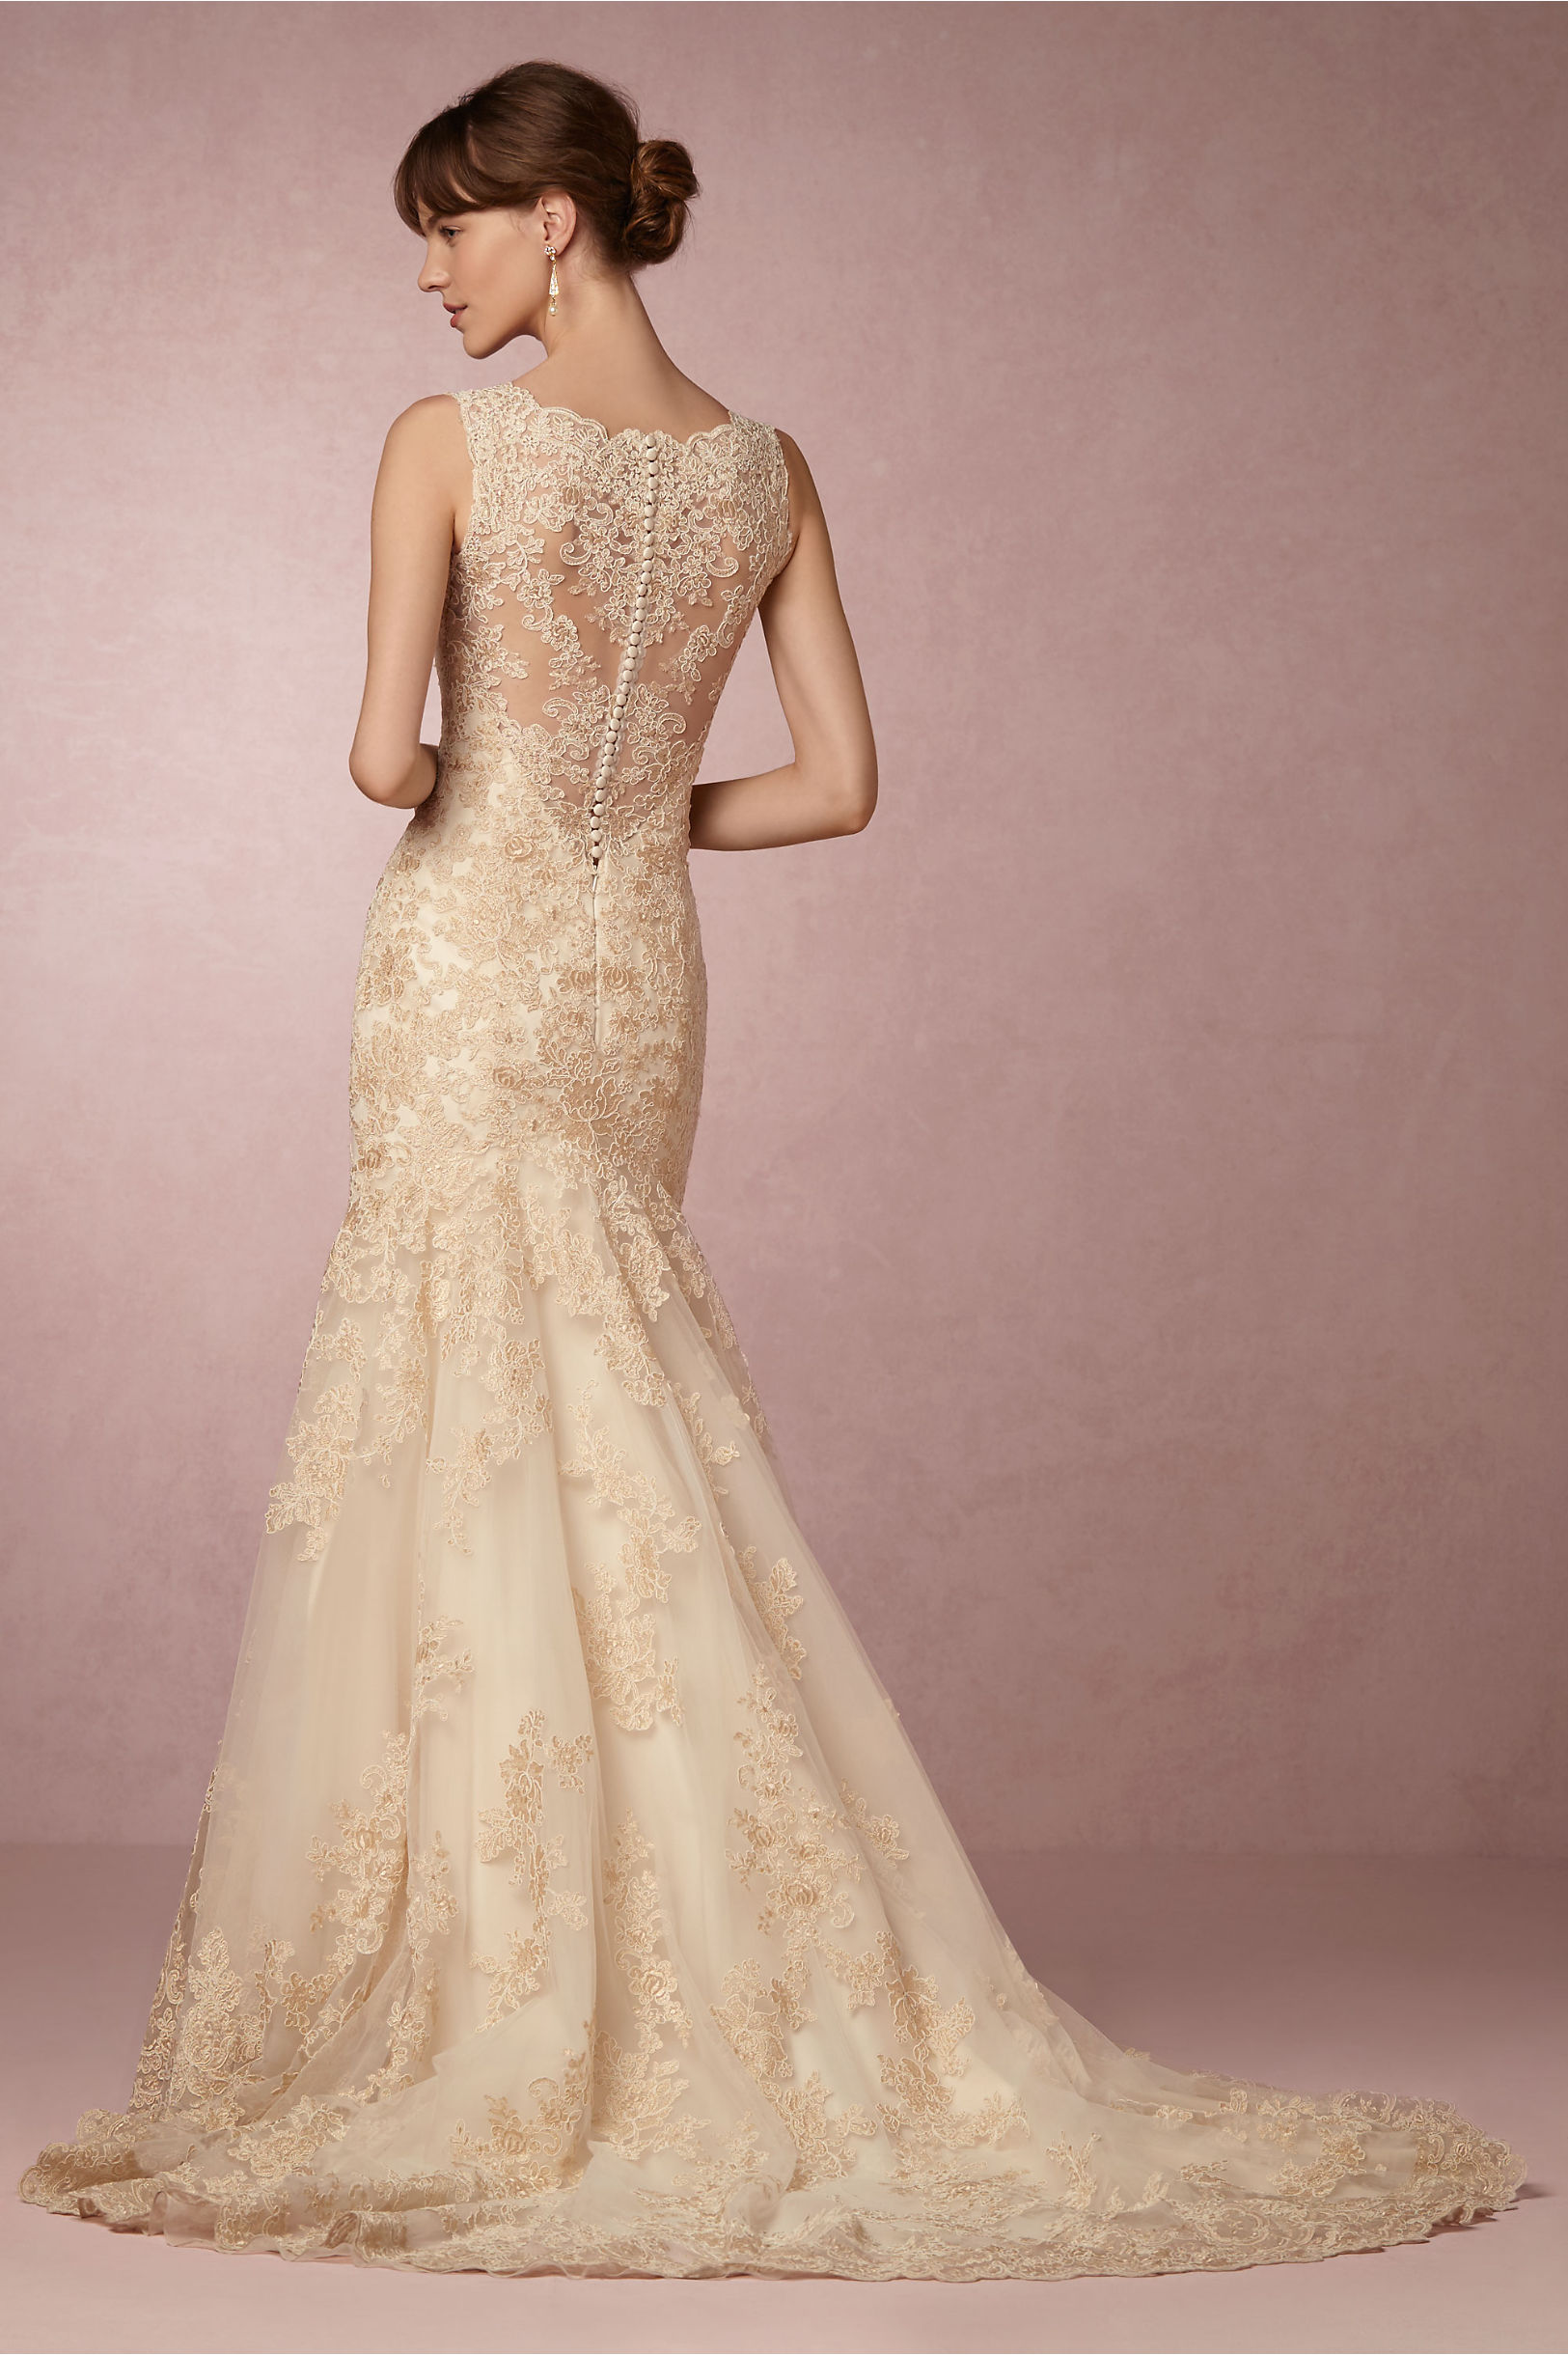 Perla Gown in Sale Wedding Dresses | BHLDN